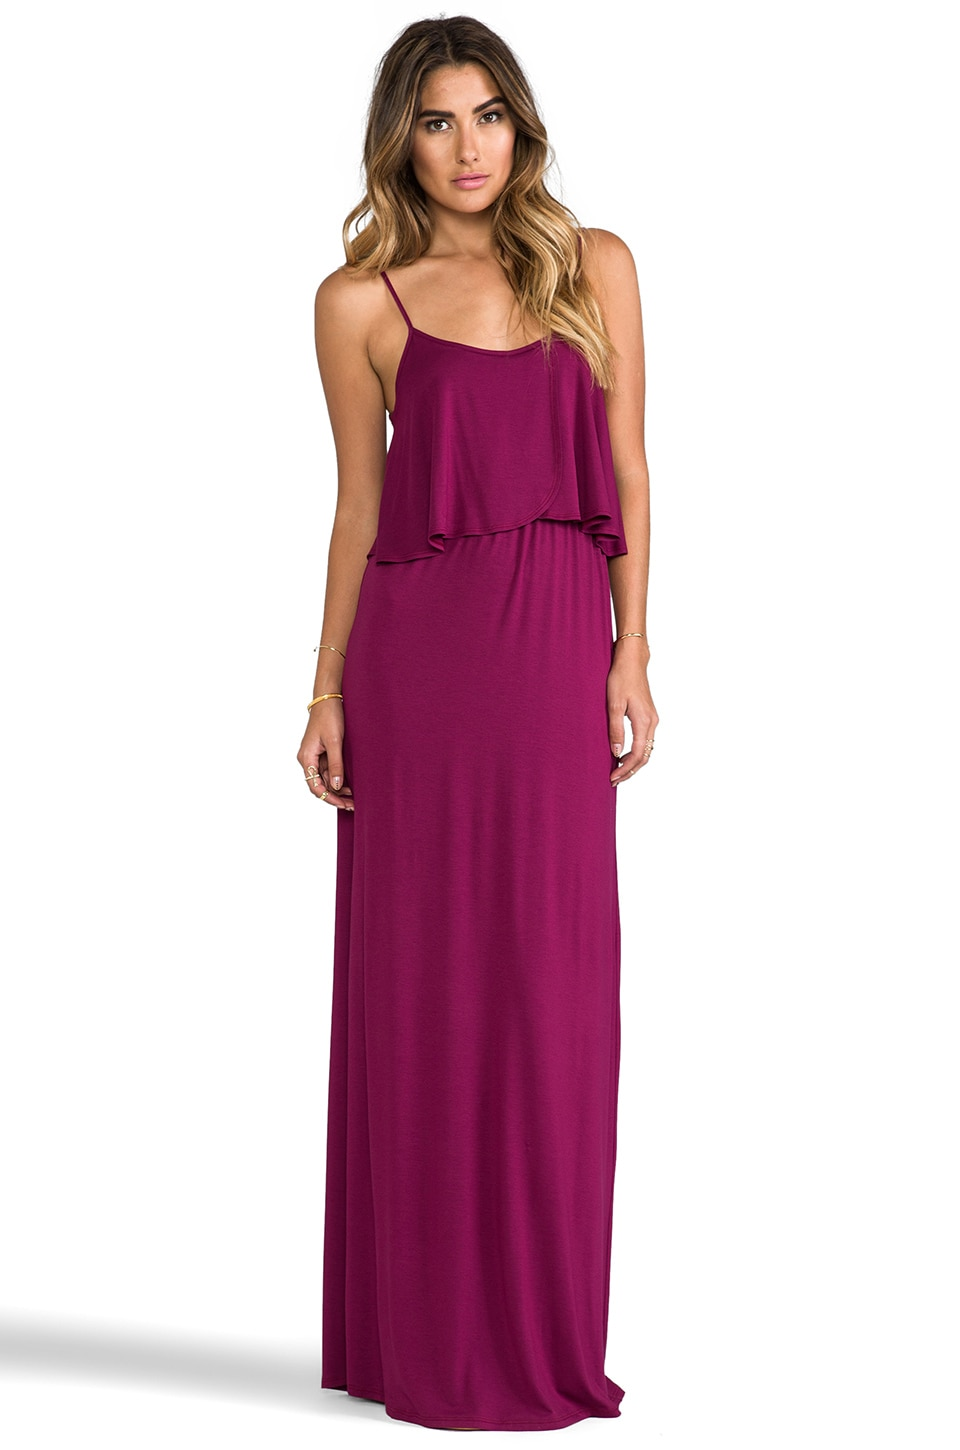 James & Joy Cindy Long Dress in Berry